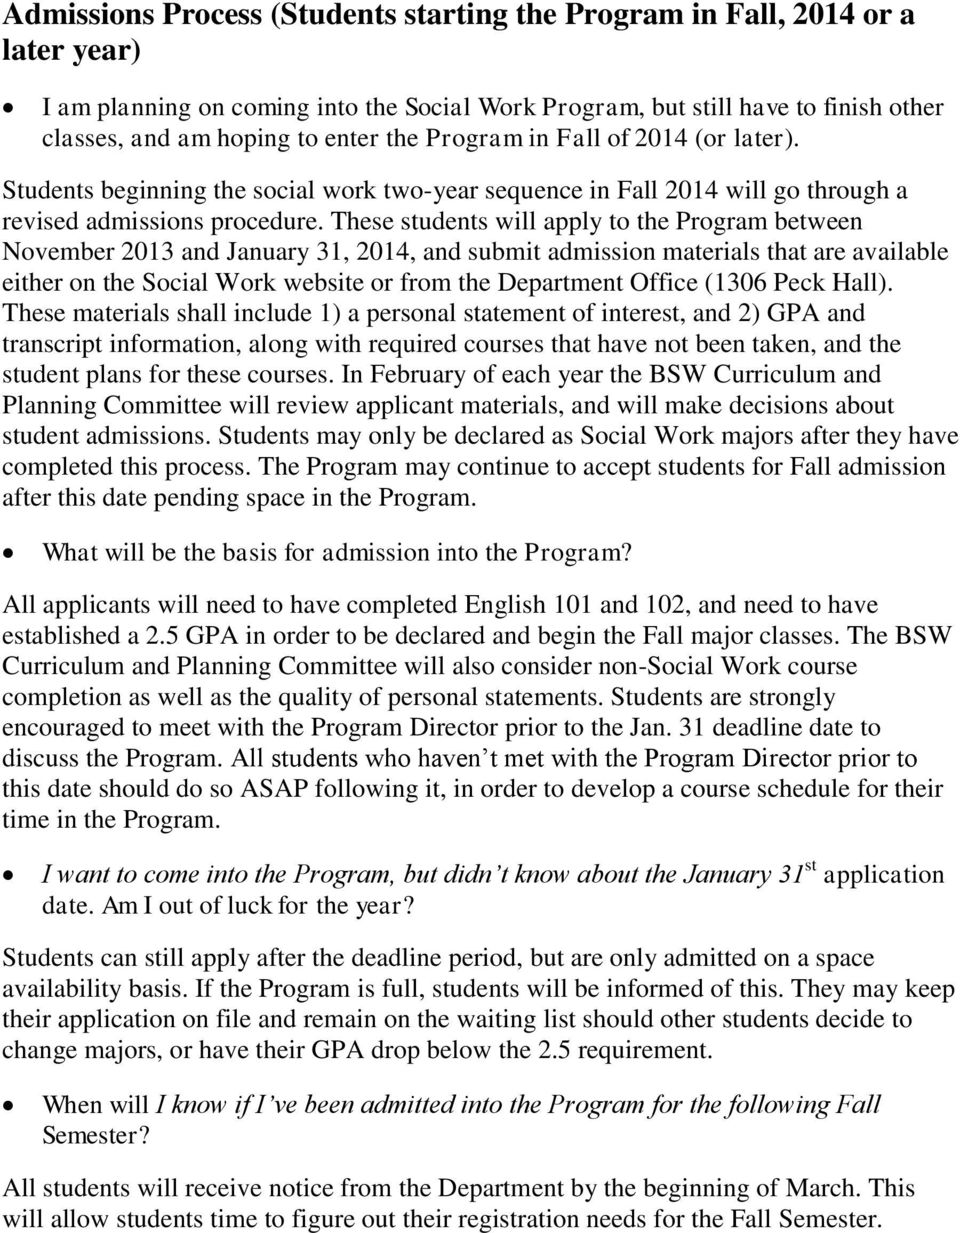 These students will apply to the Program between November 2013 and January 31, 2014, and submit admission materials that are available either on the Social Work website or from the Department Office